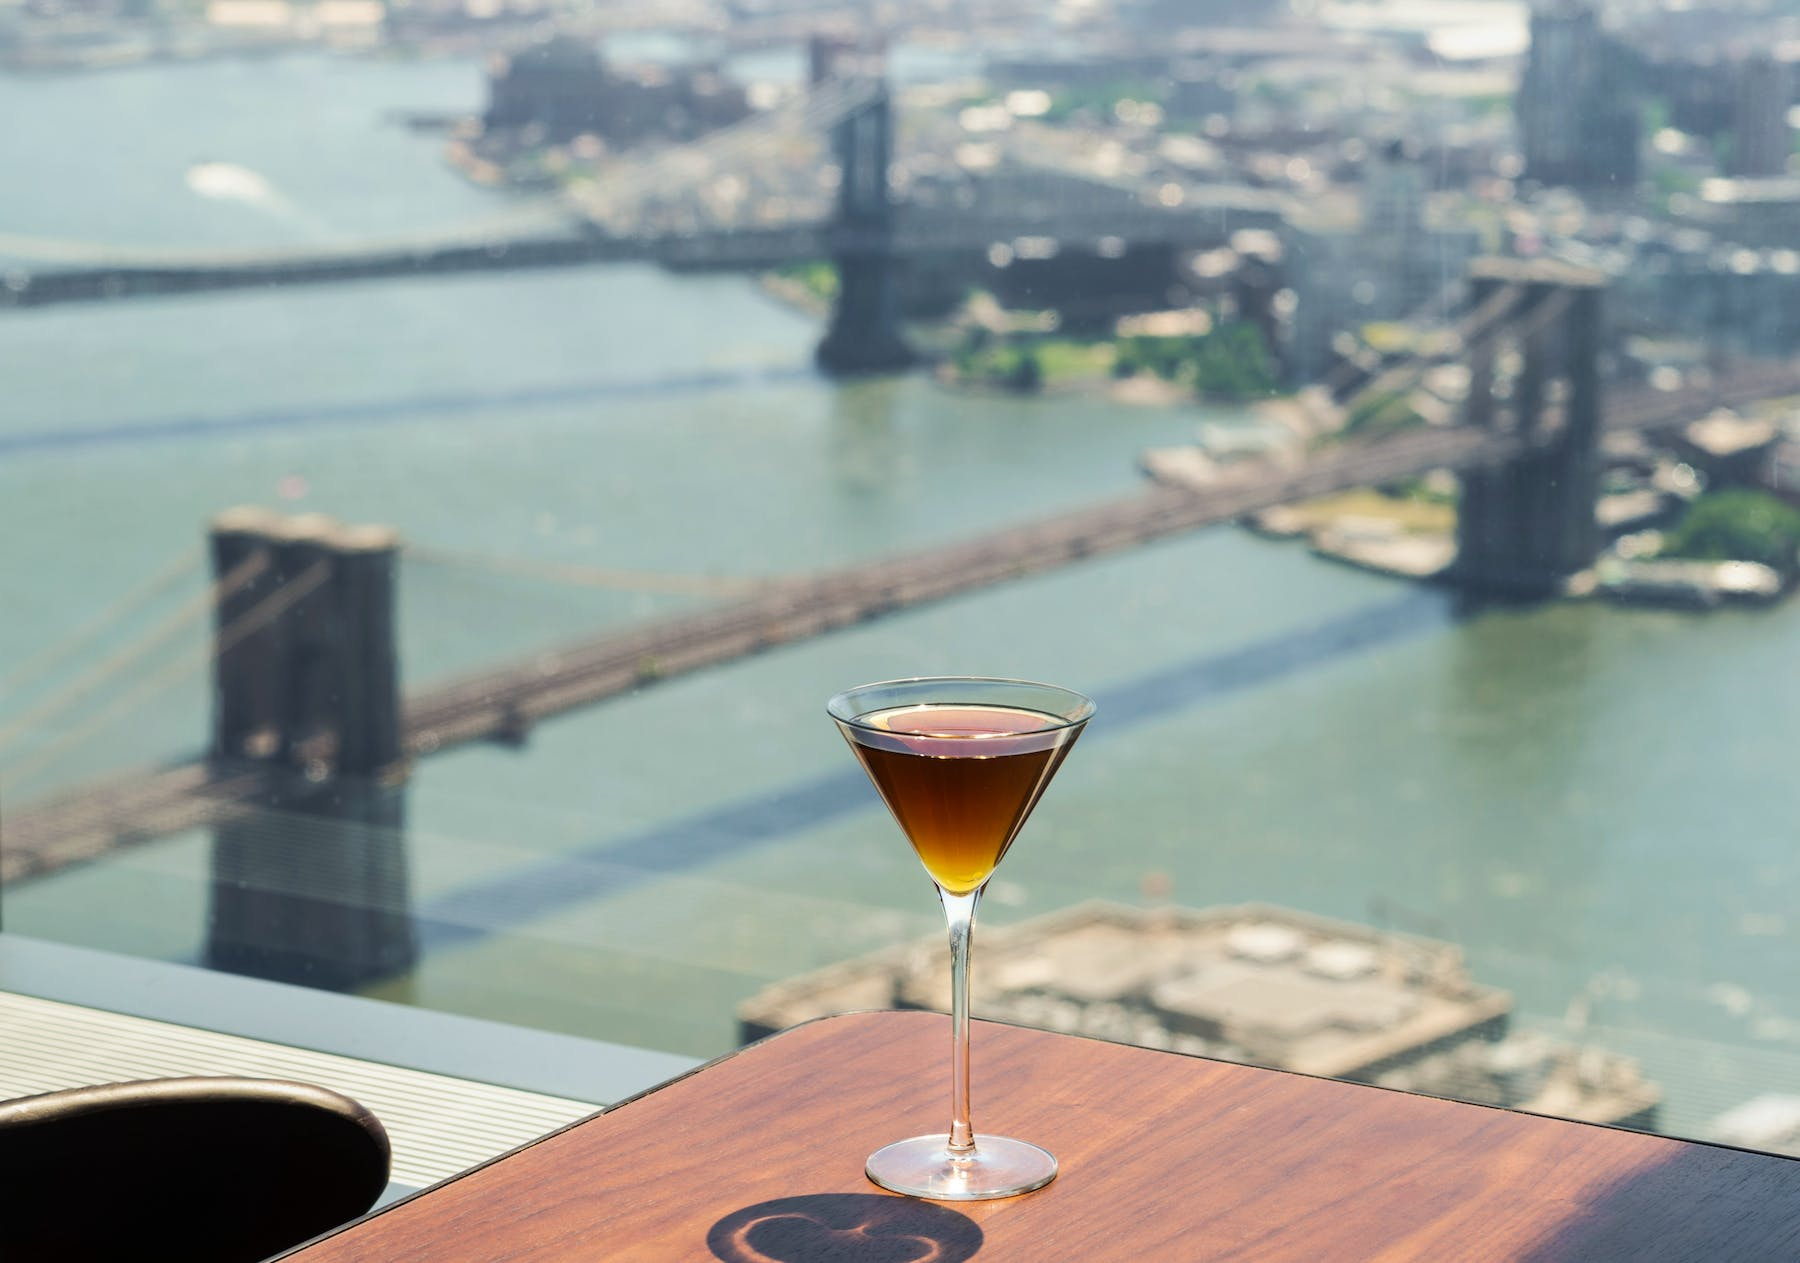 The Manhatta Cocktail at Manhatta